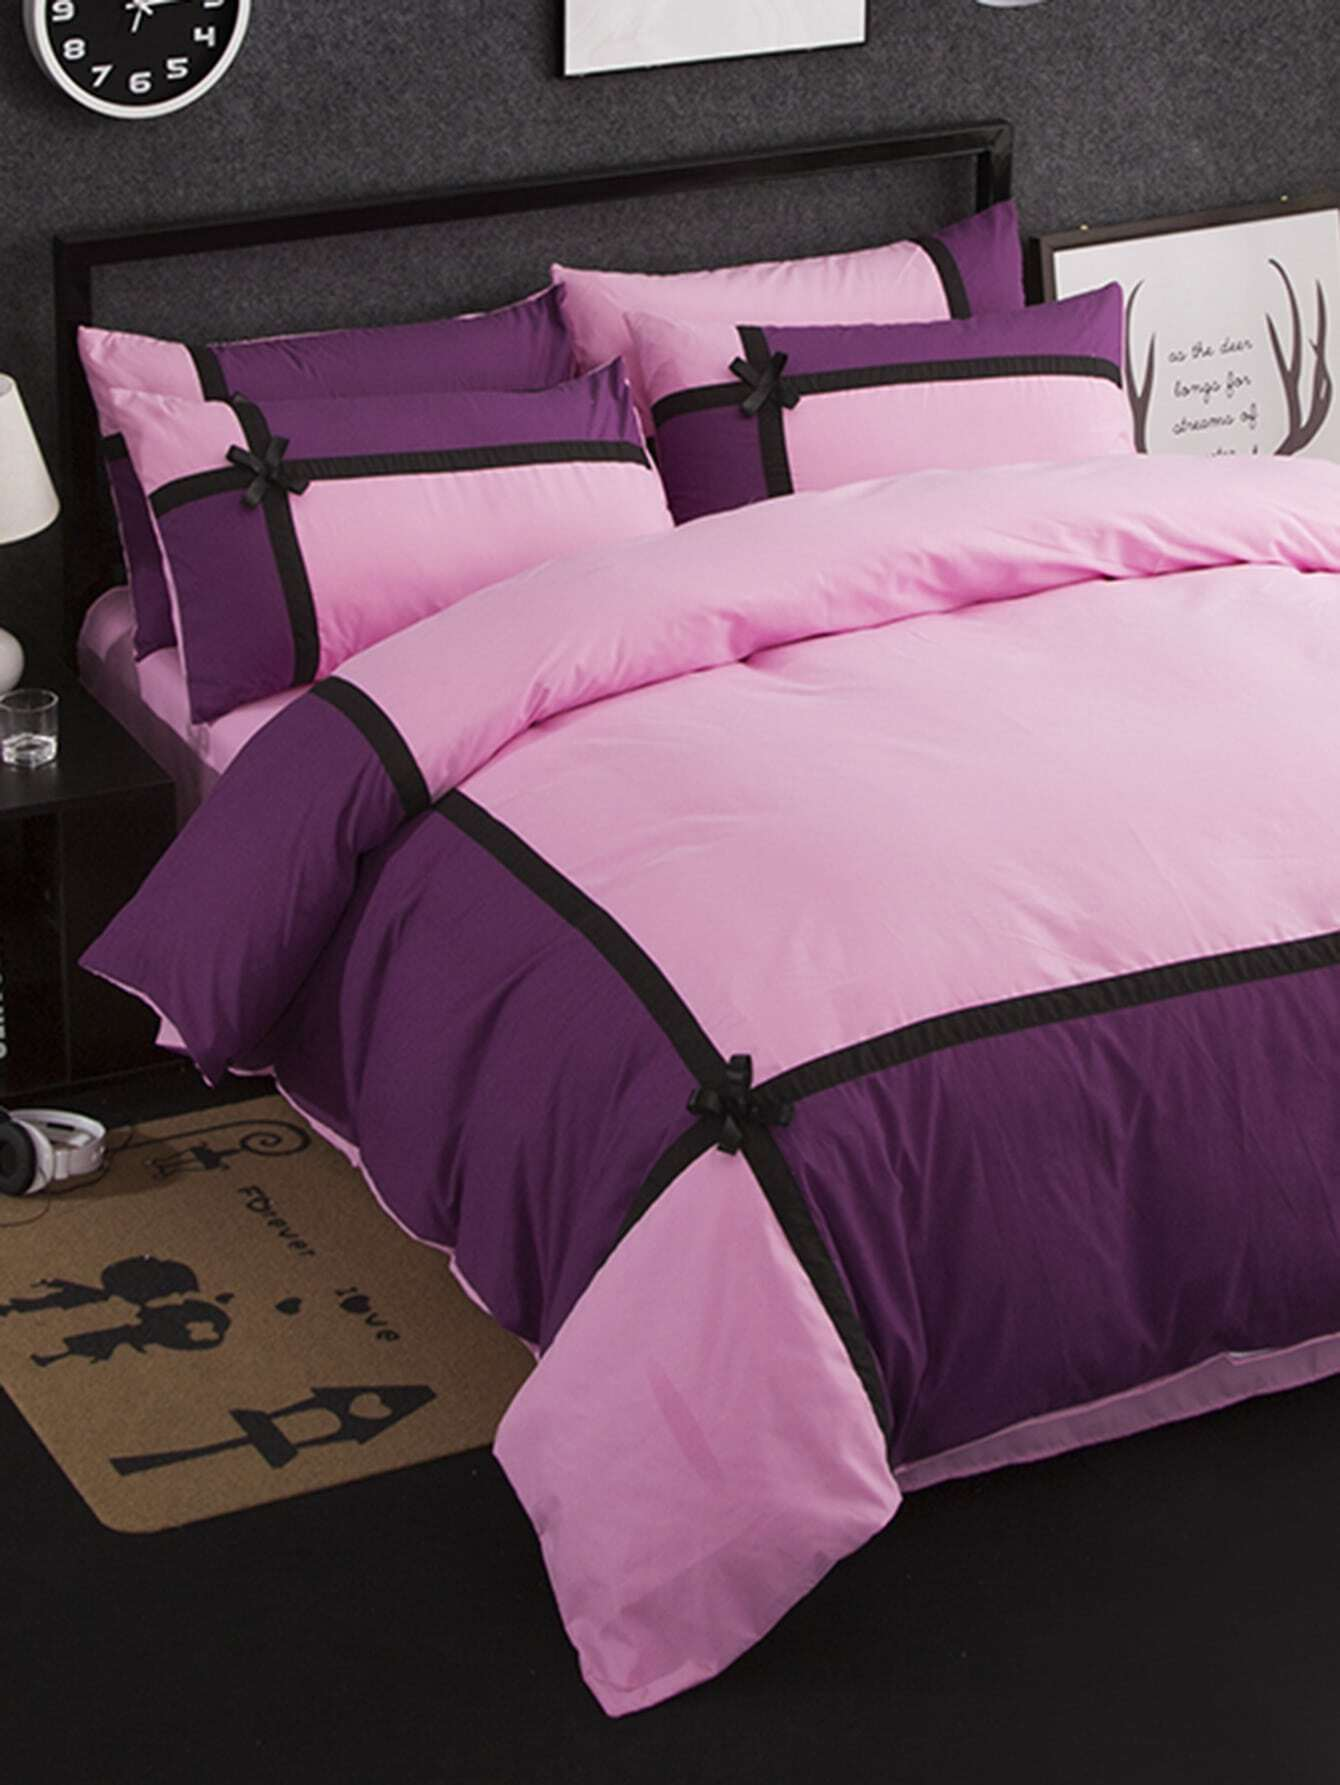 2.0m 4Pcs Bow Decorated Colorblock Bed Sheet Set бра leds c4 bed 05 2830 34 34